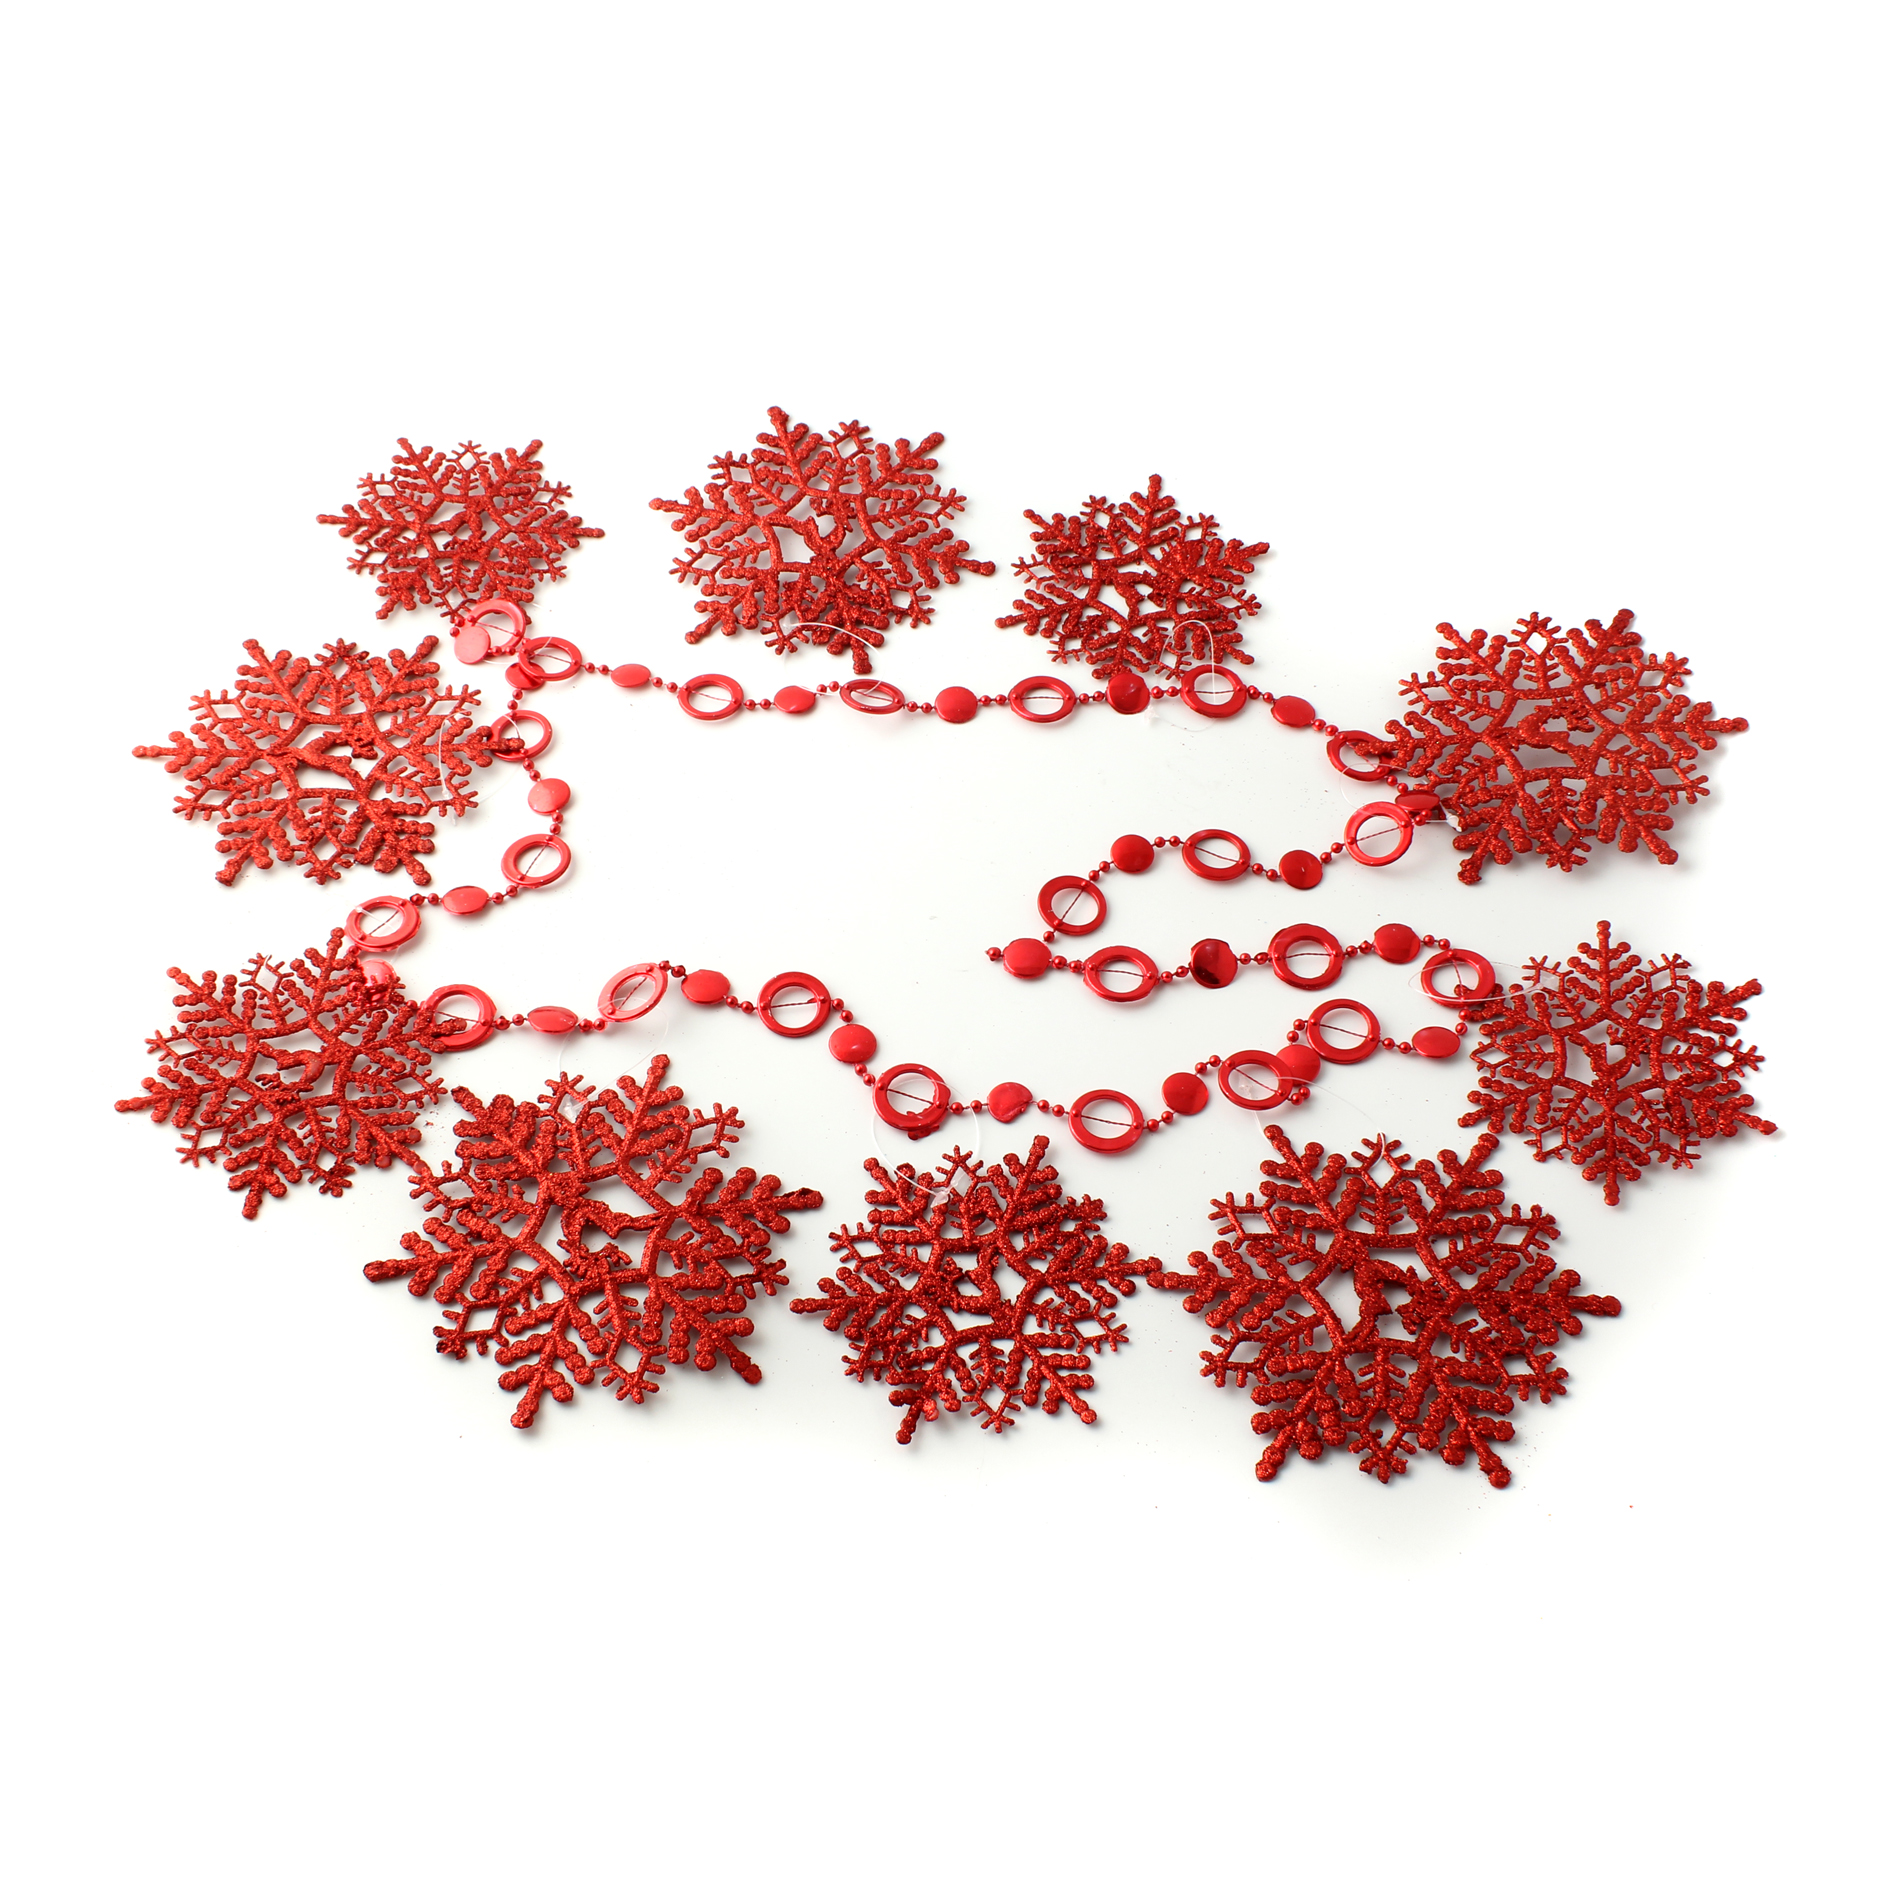 Snowflake Windows Door Christmas Tree Hanging Decoration Ornaments